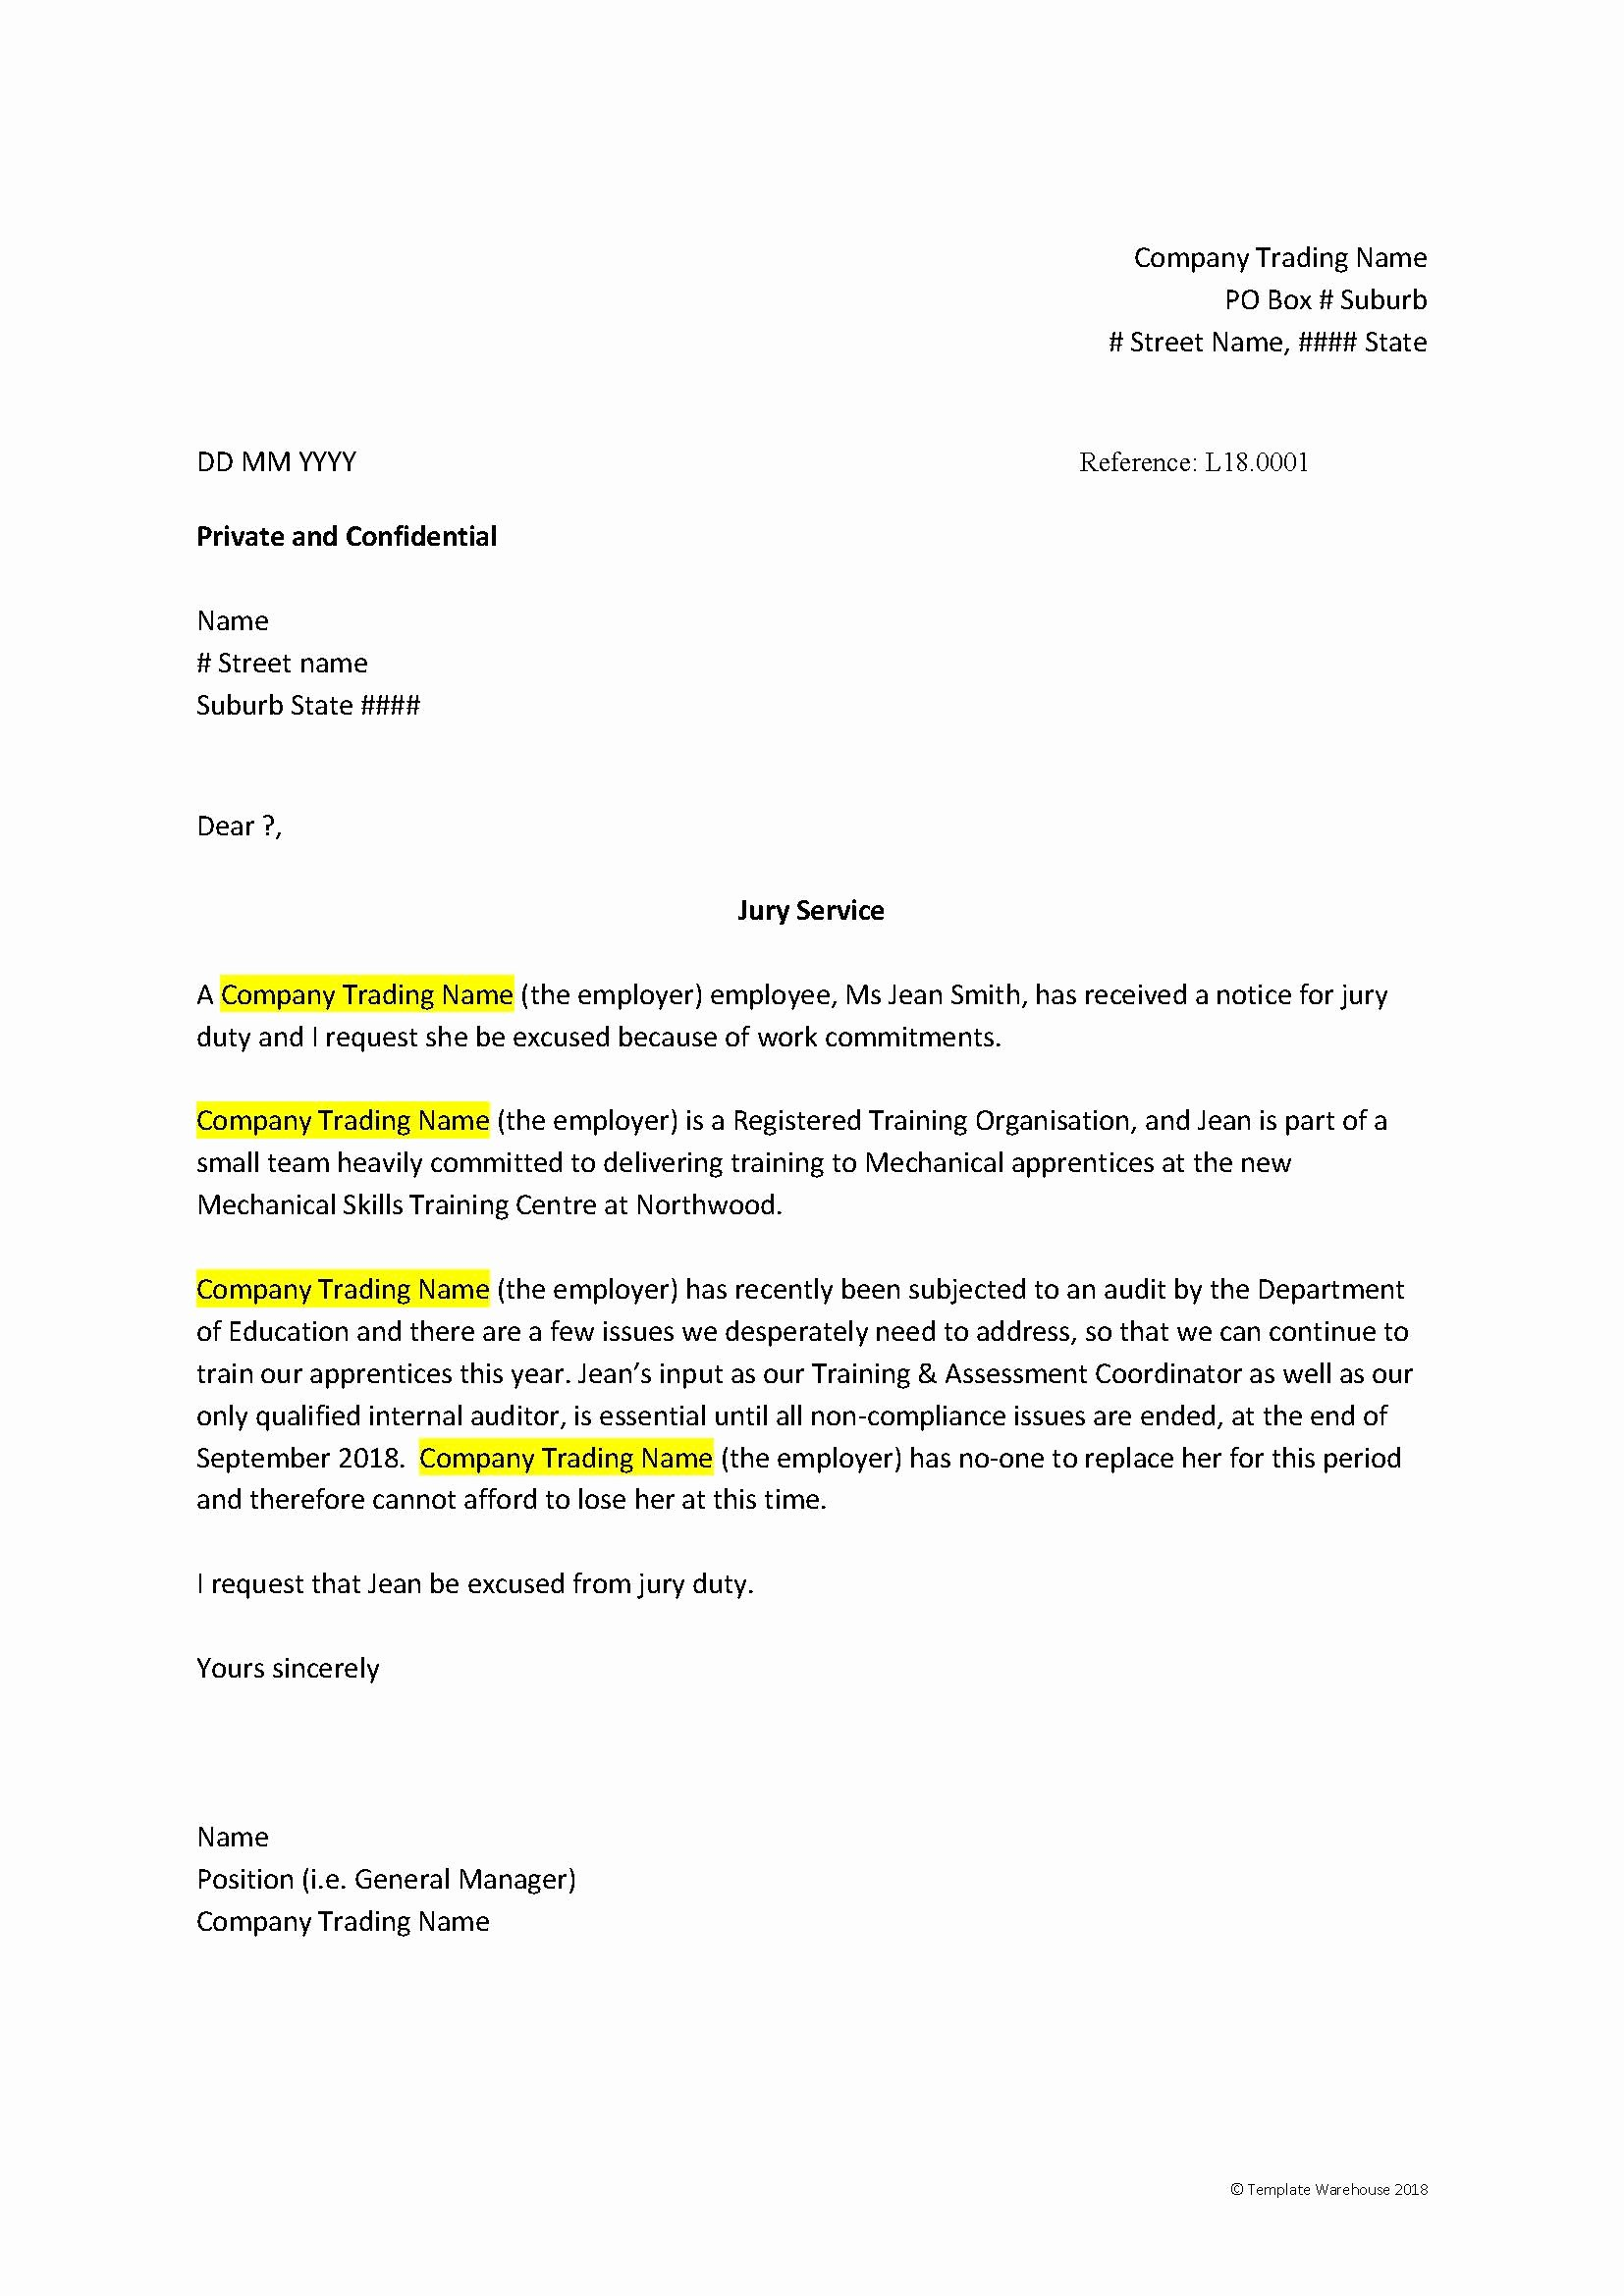 Jury Duty Letter for Employer Inspirational Hrm 03 005 – Request Excused From Jury Service Letter 1